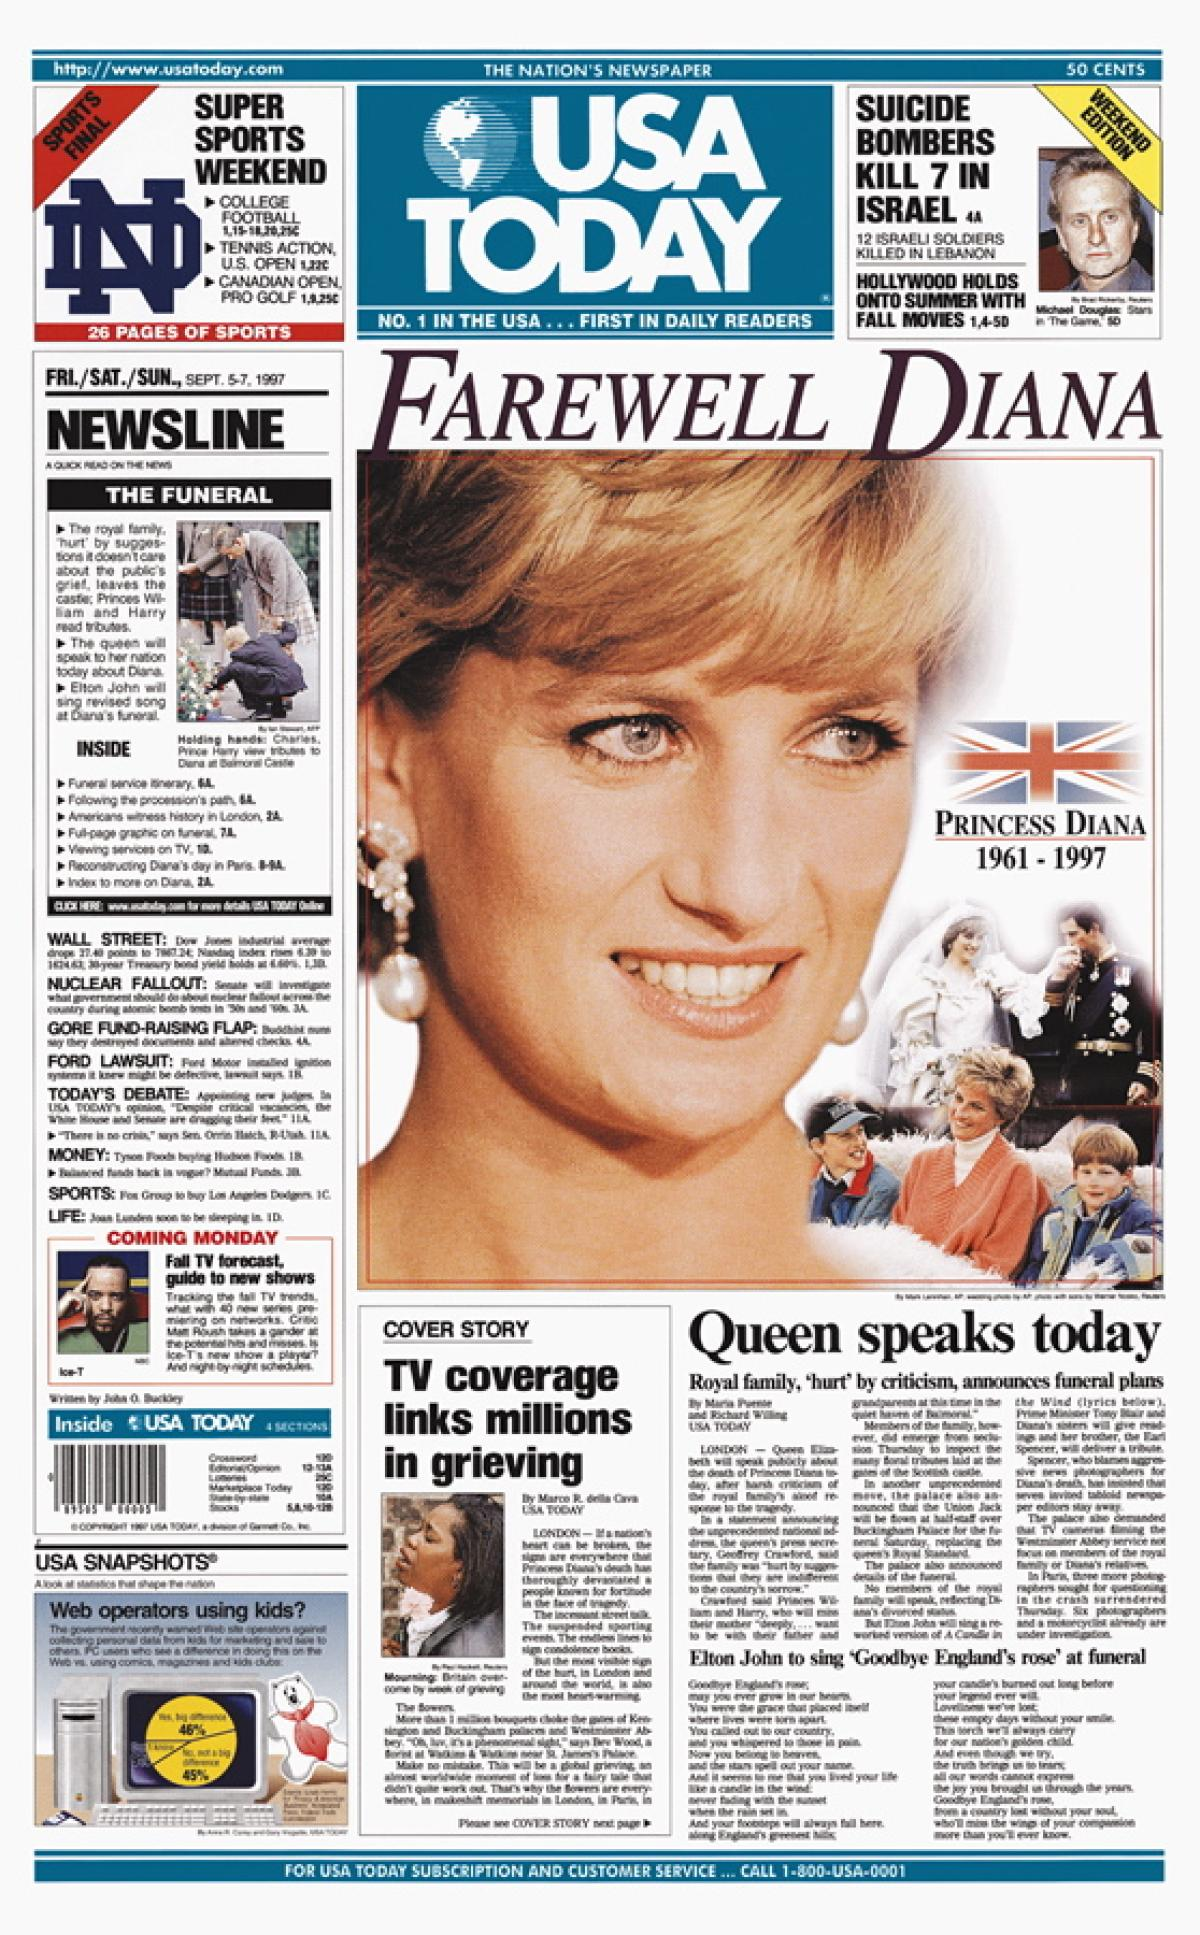 news posting upon little princess diana death